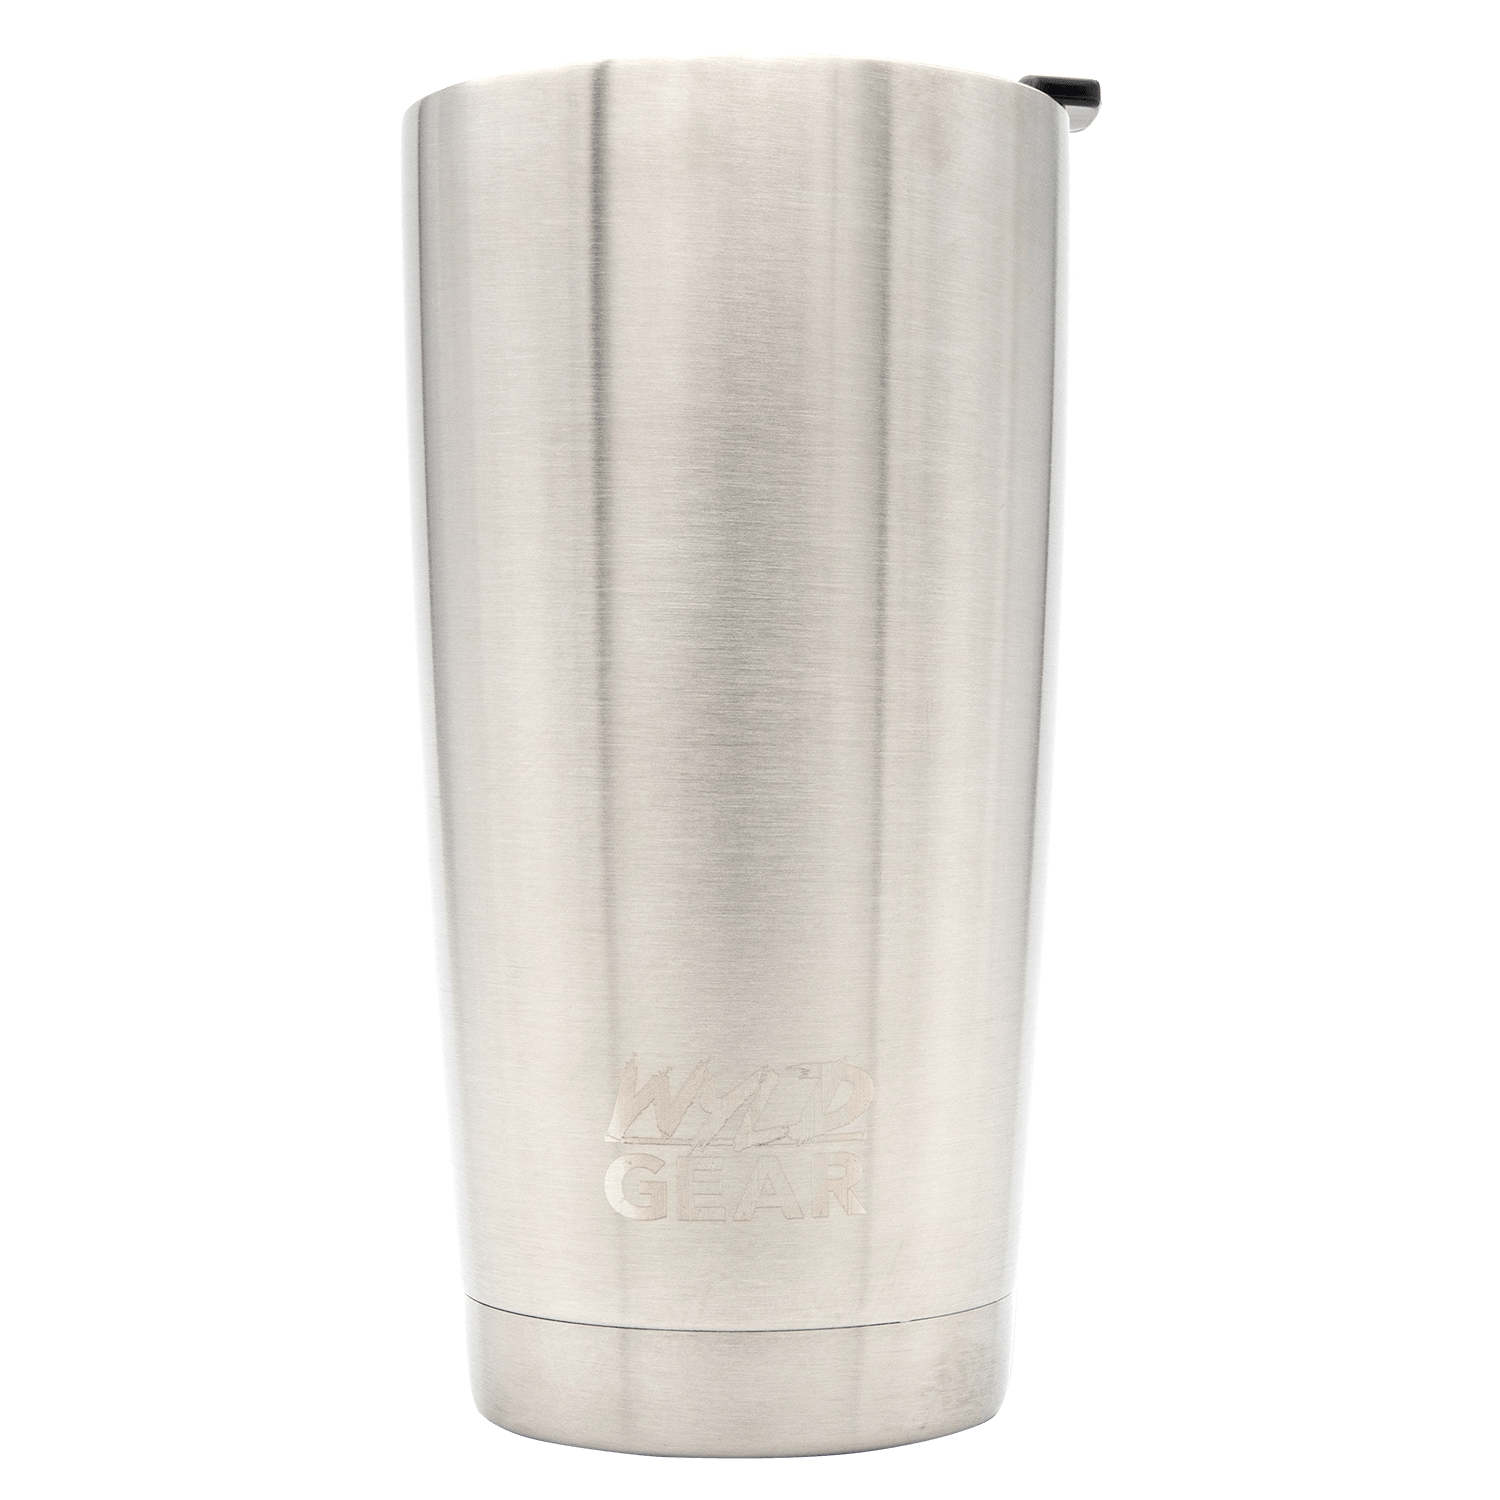 20oz-Stainless